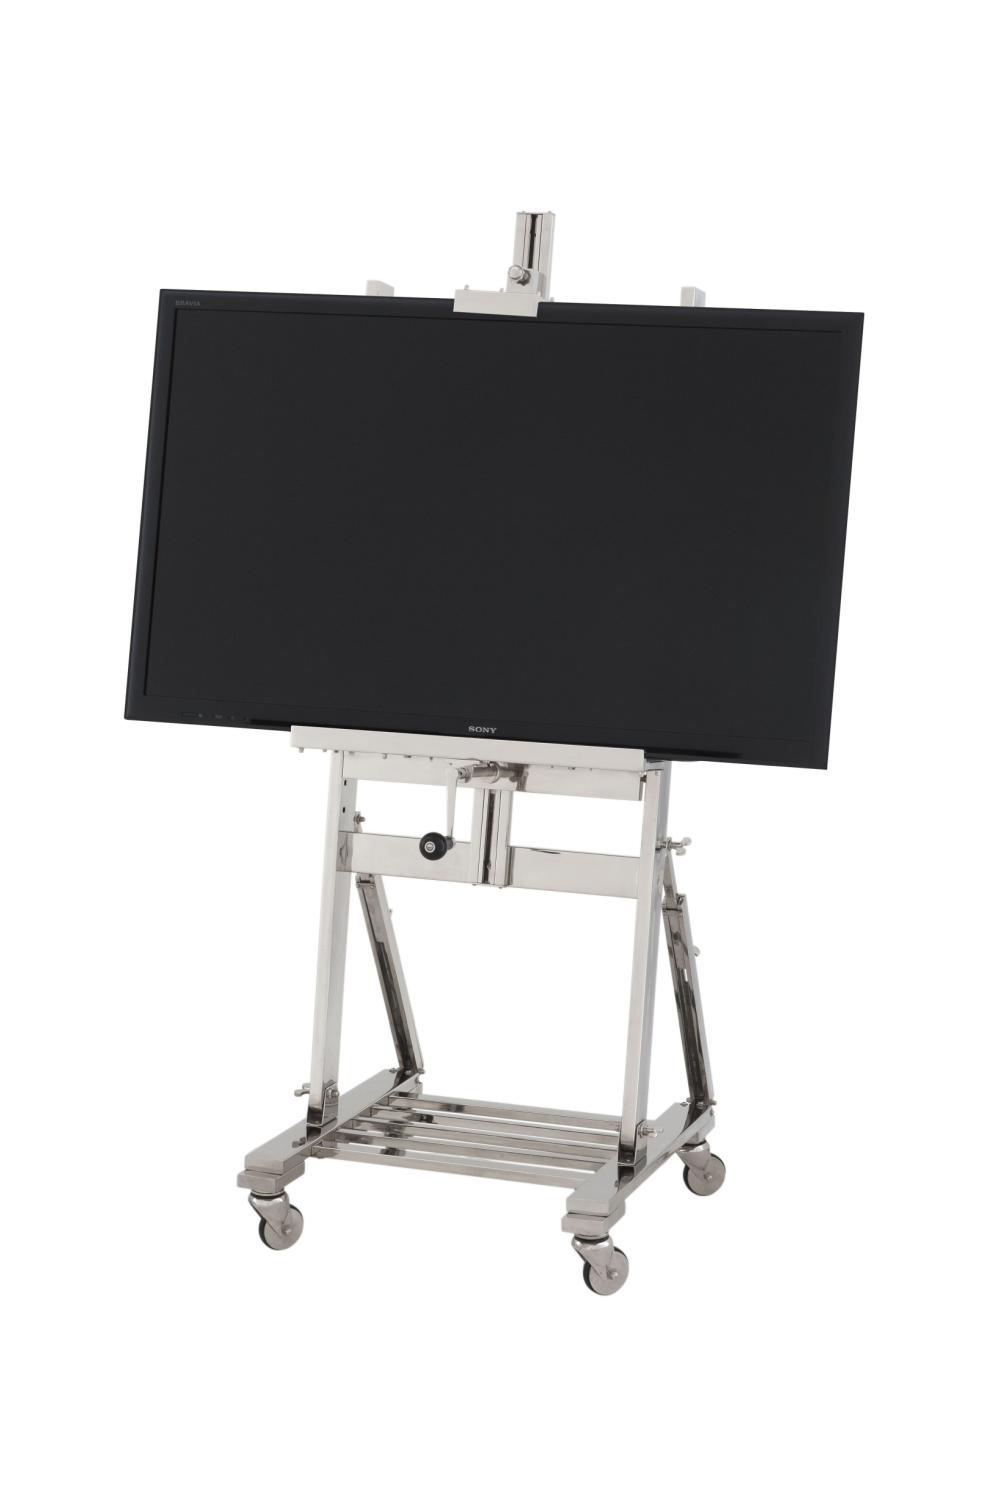 Silver TV Easel on Wheels | Eichholtz | #1 Eichholtz Online Retailer